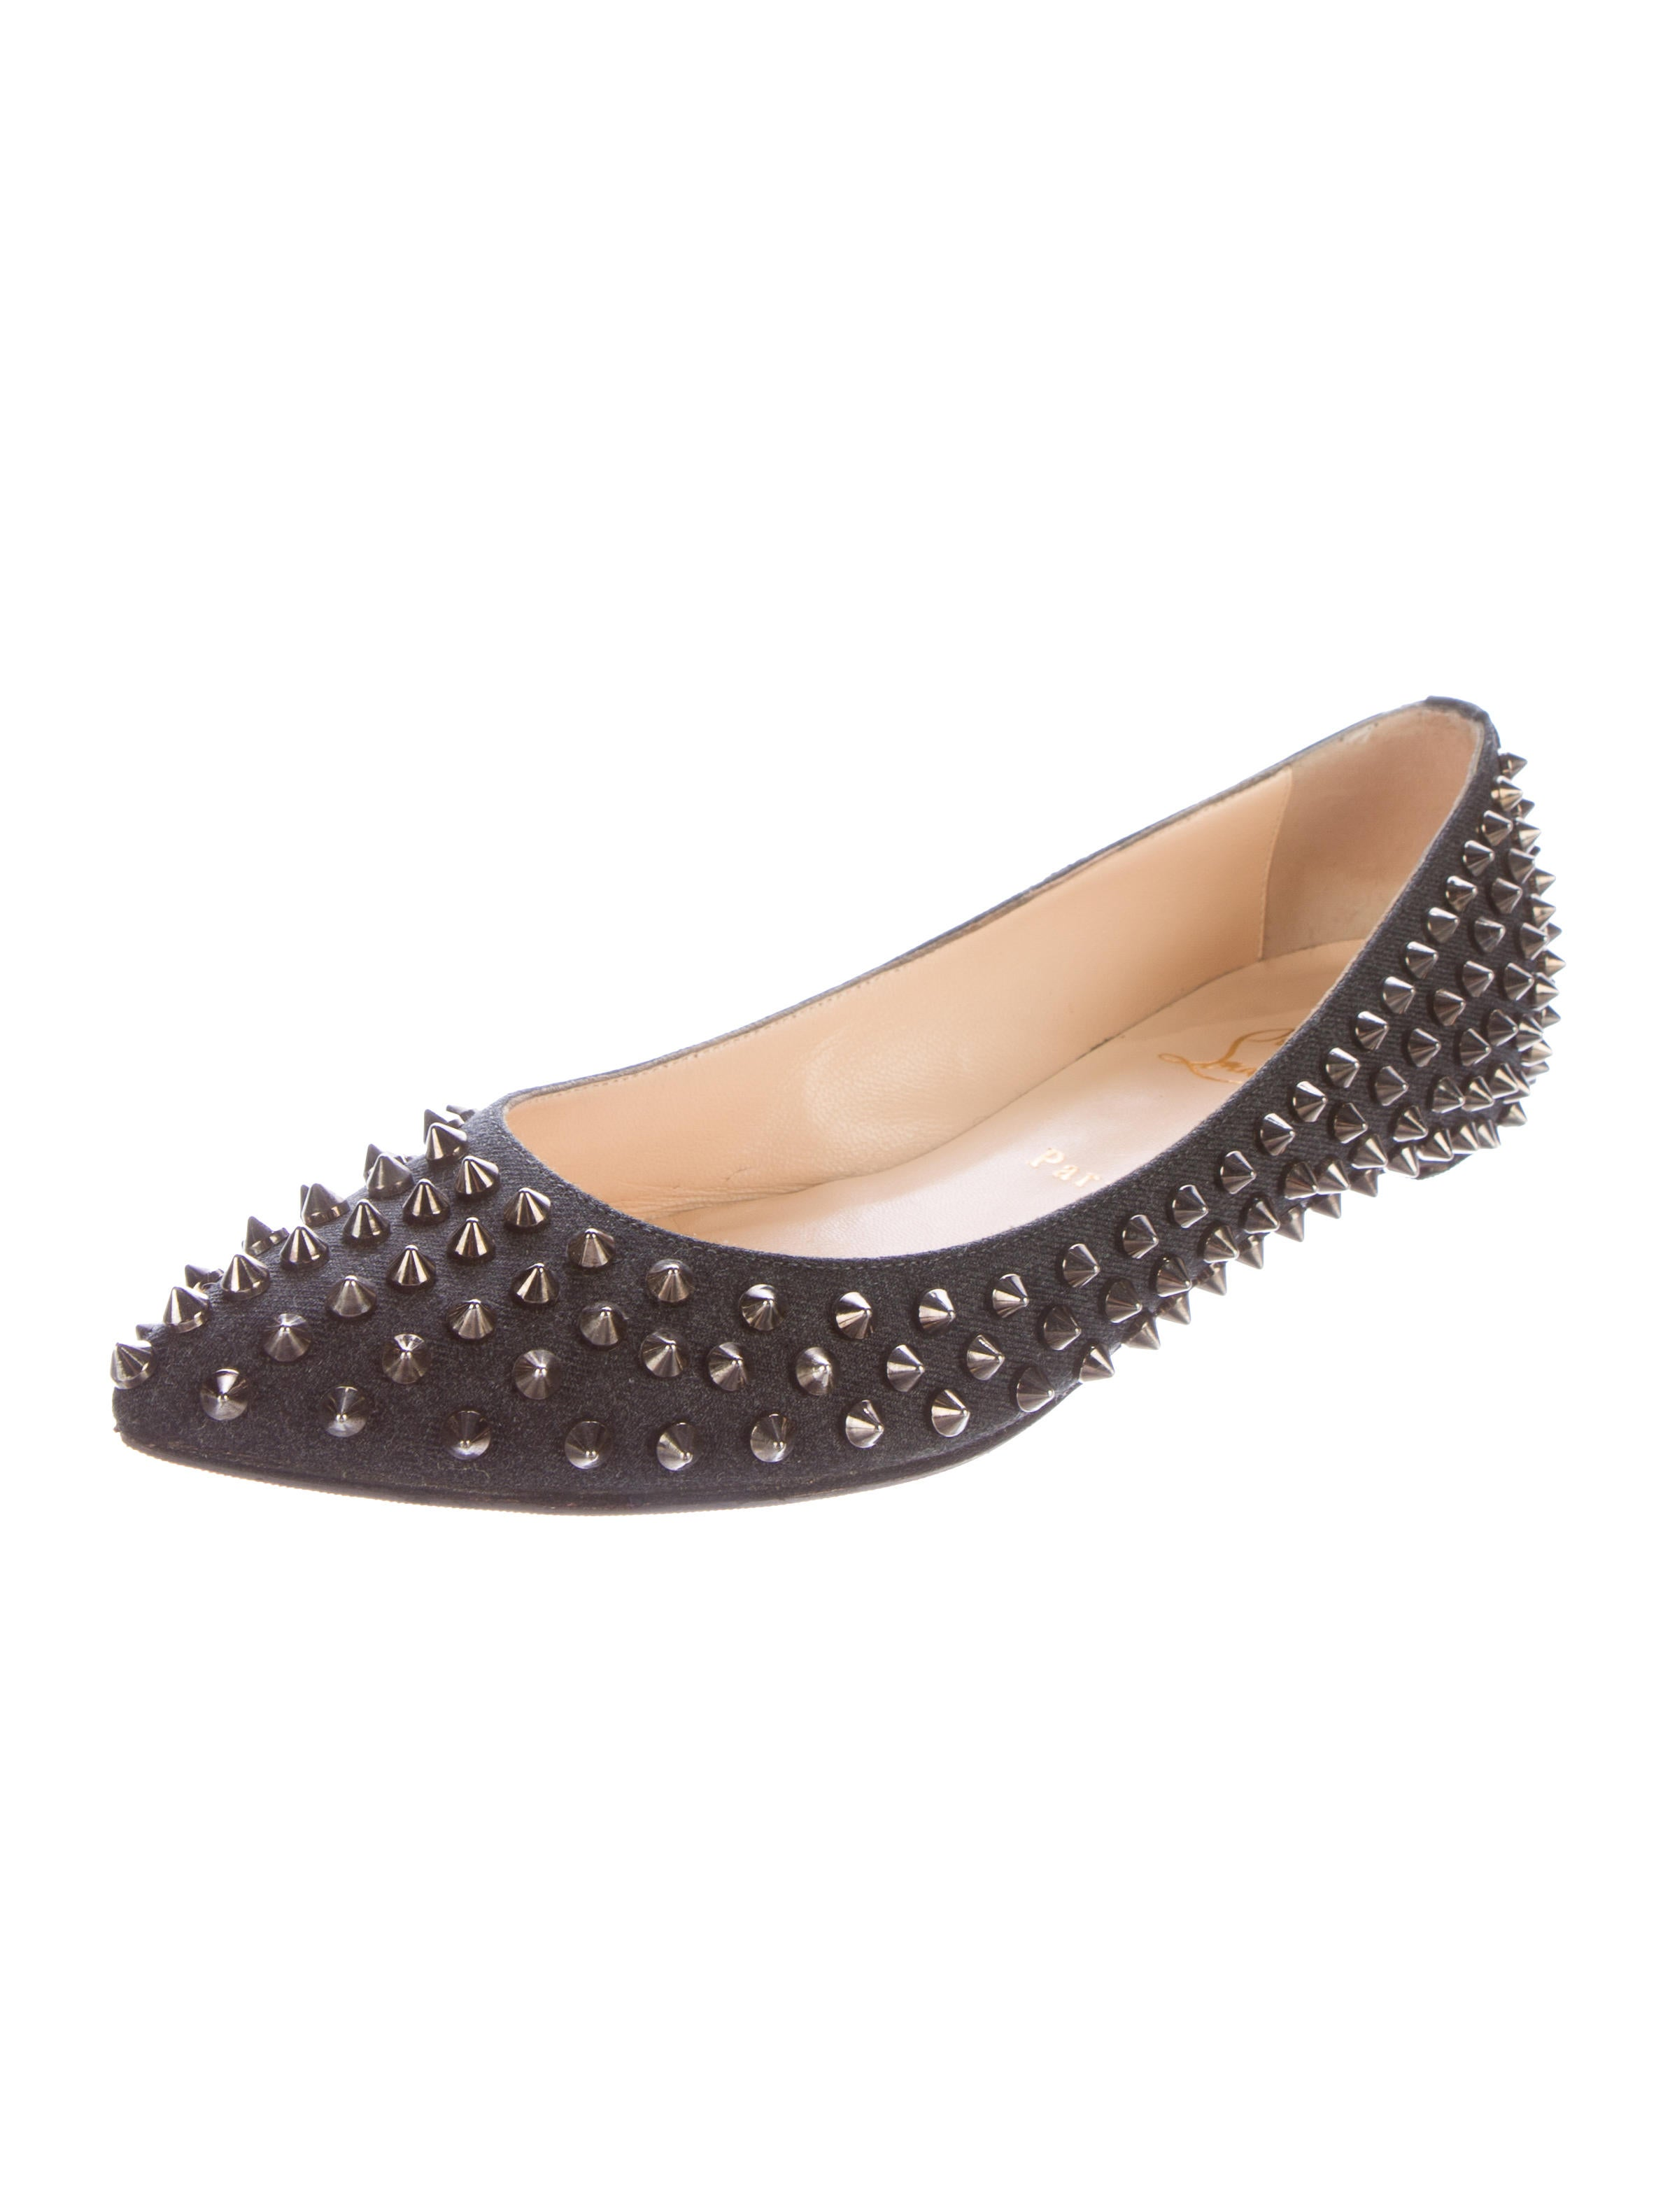 sports shoes 59459 5c5e2 Spiked Flats Images - Reverse Search